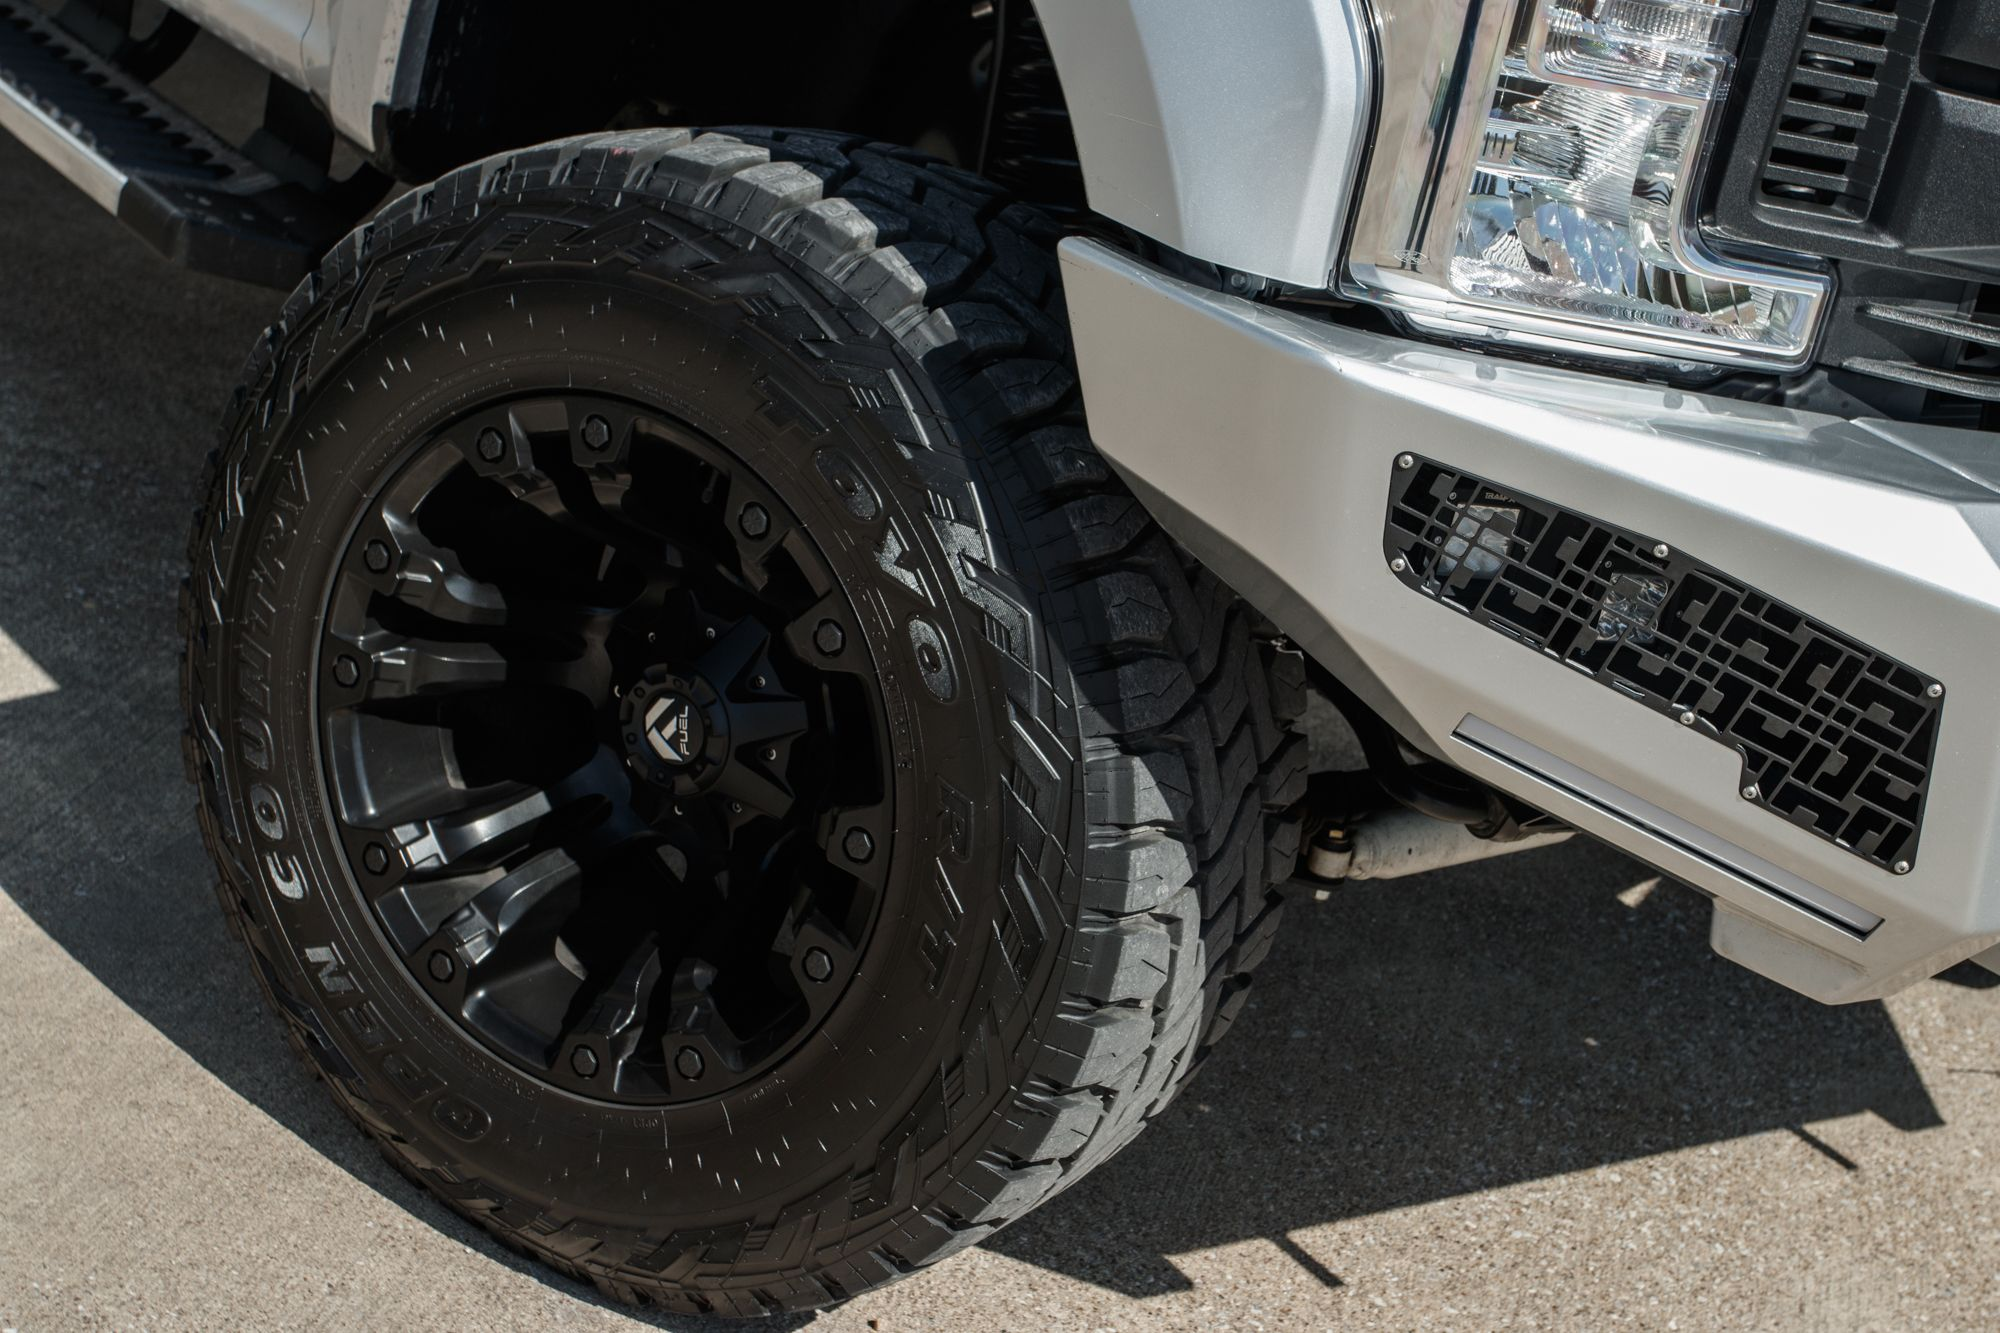 Fuel Vapor 20 Inch Wheels On A 2018 Ford F250 Super Duty In Silver Metallic F250 F250 Super Duty 20 Inch Wheels